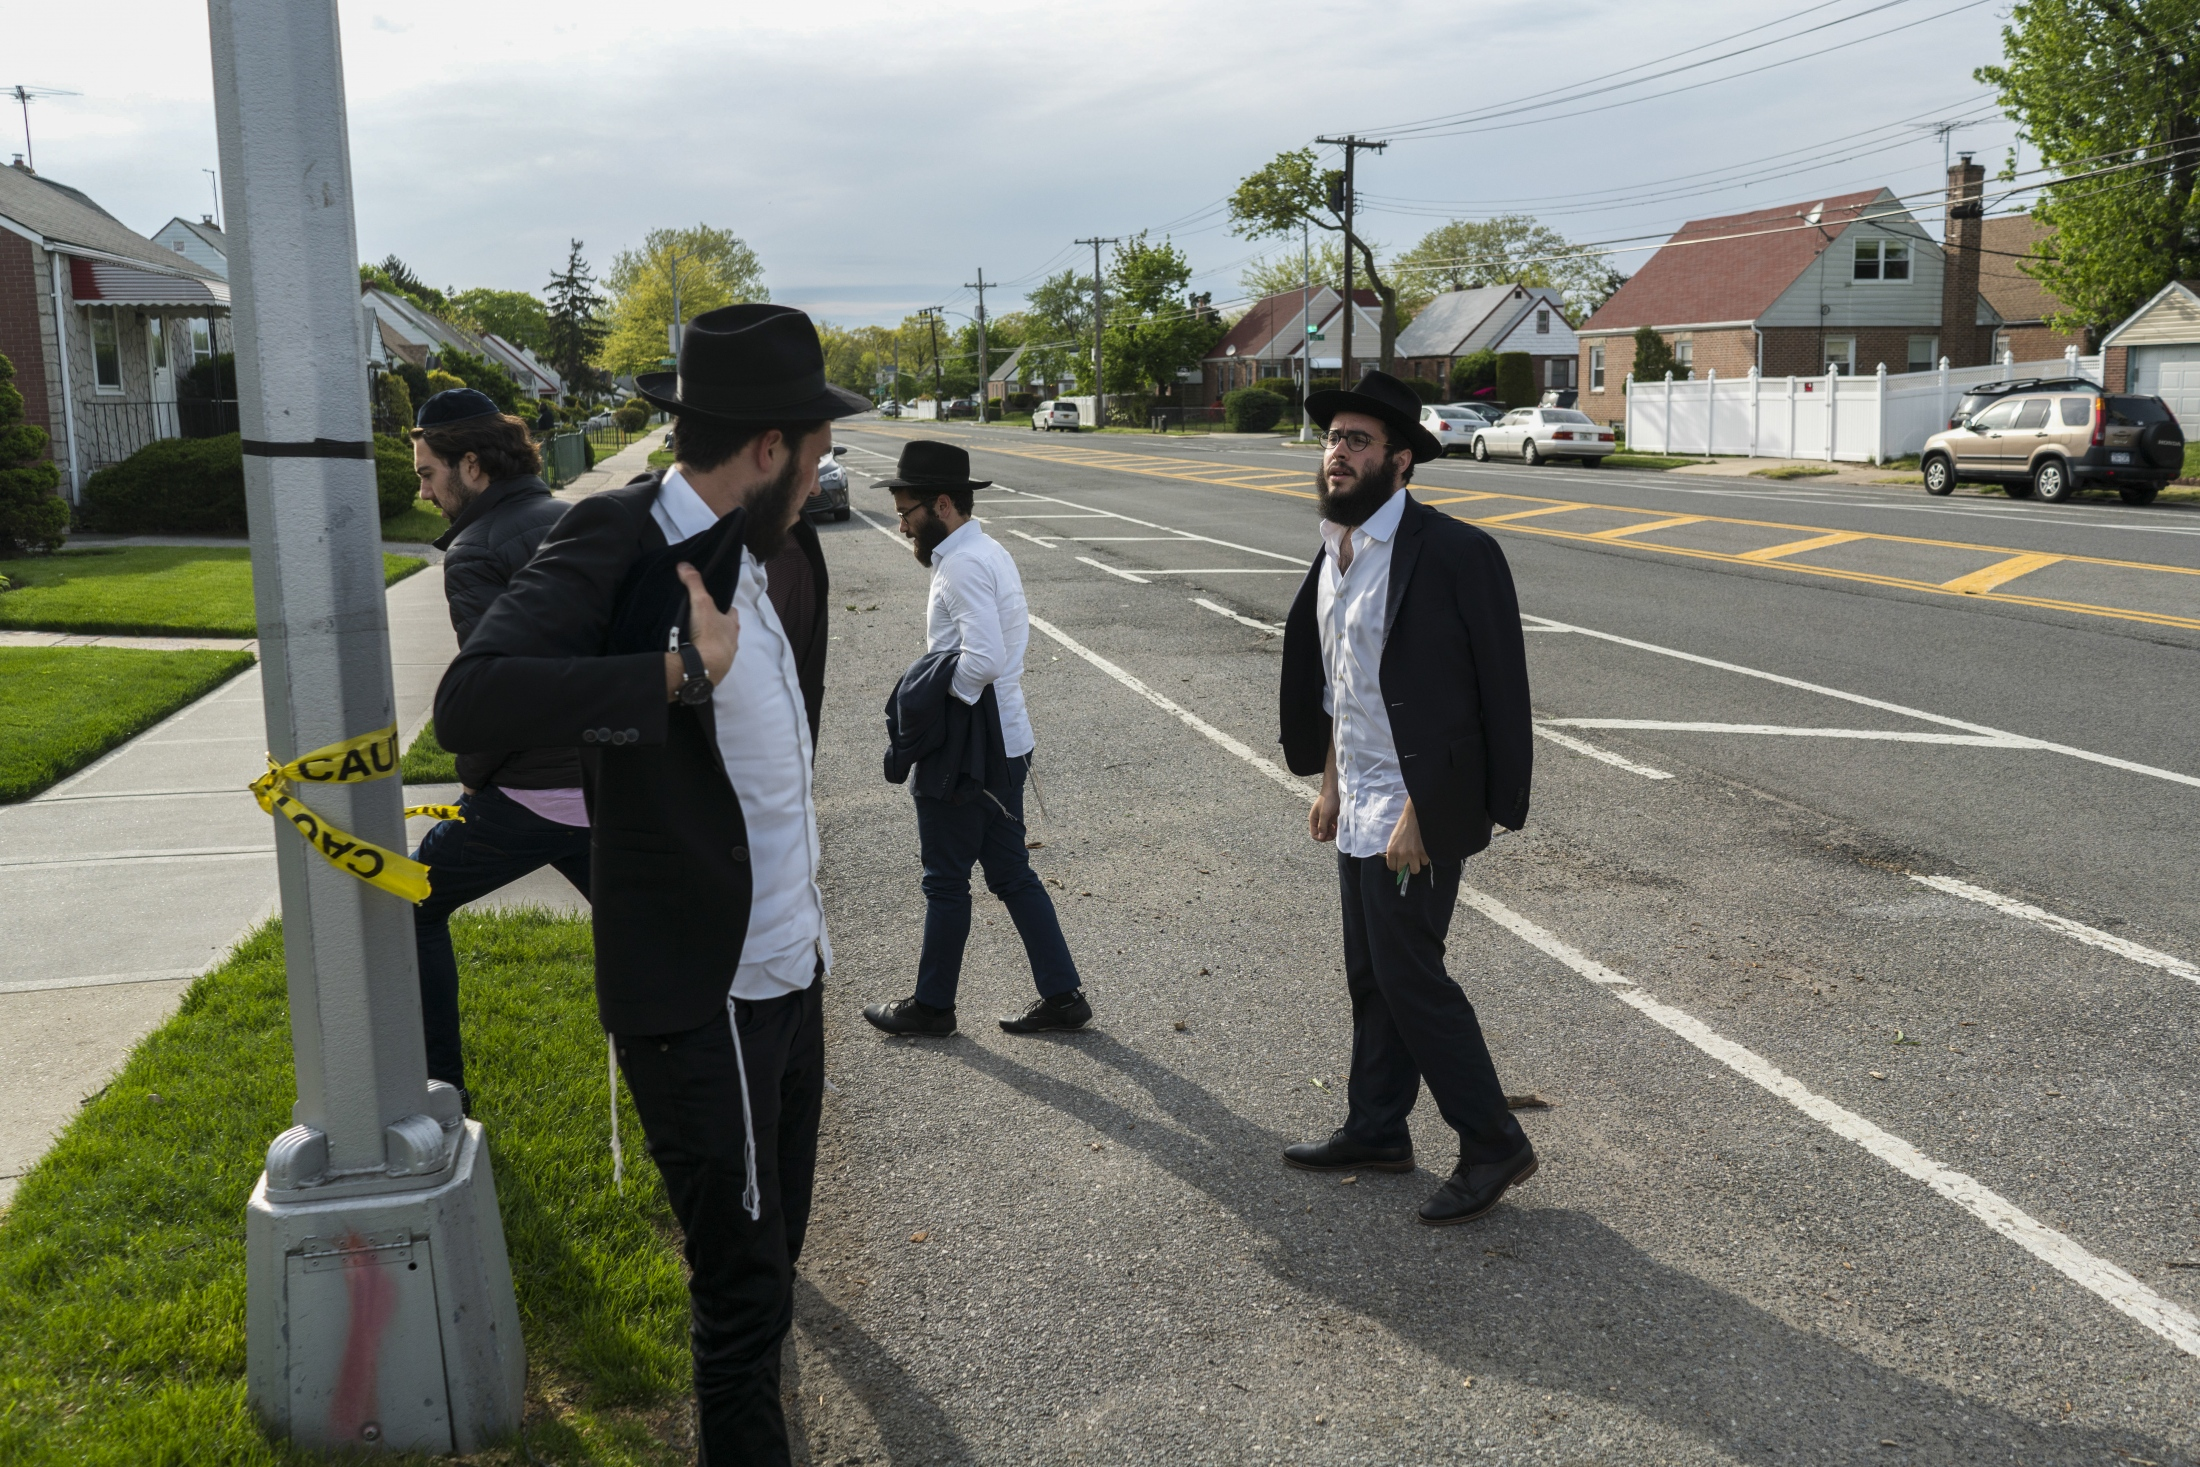 Mendel and his friends visit the Rebbe's tomb biweekly at the Chabad Lubavitch Ohel in Queens.